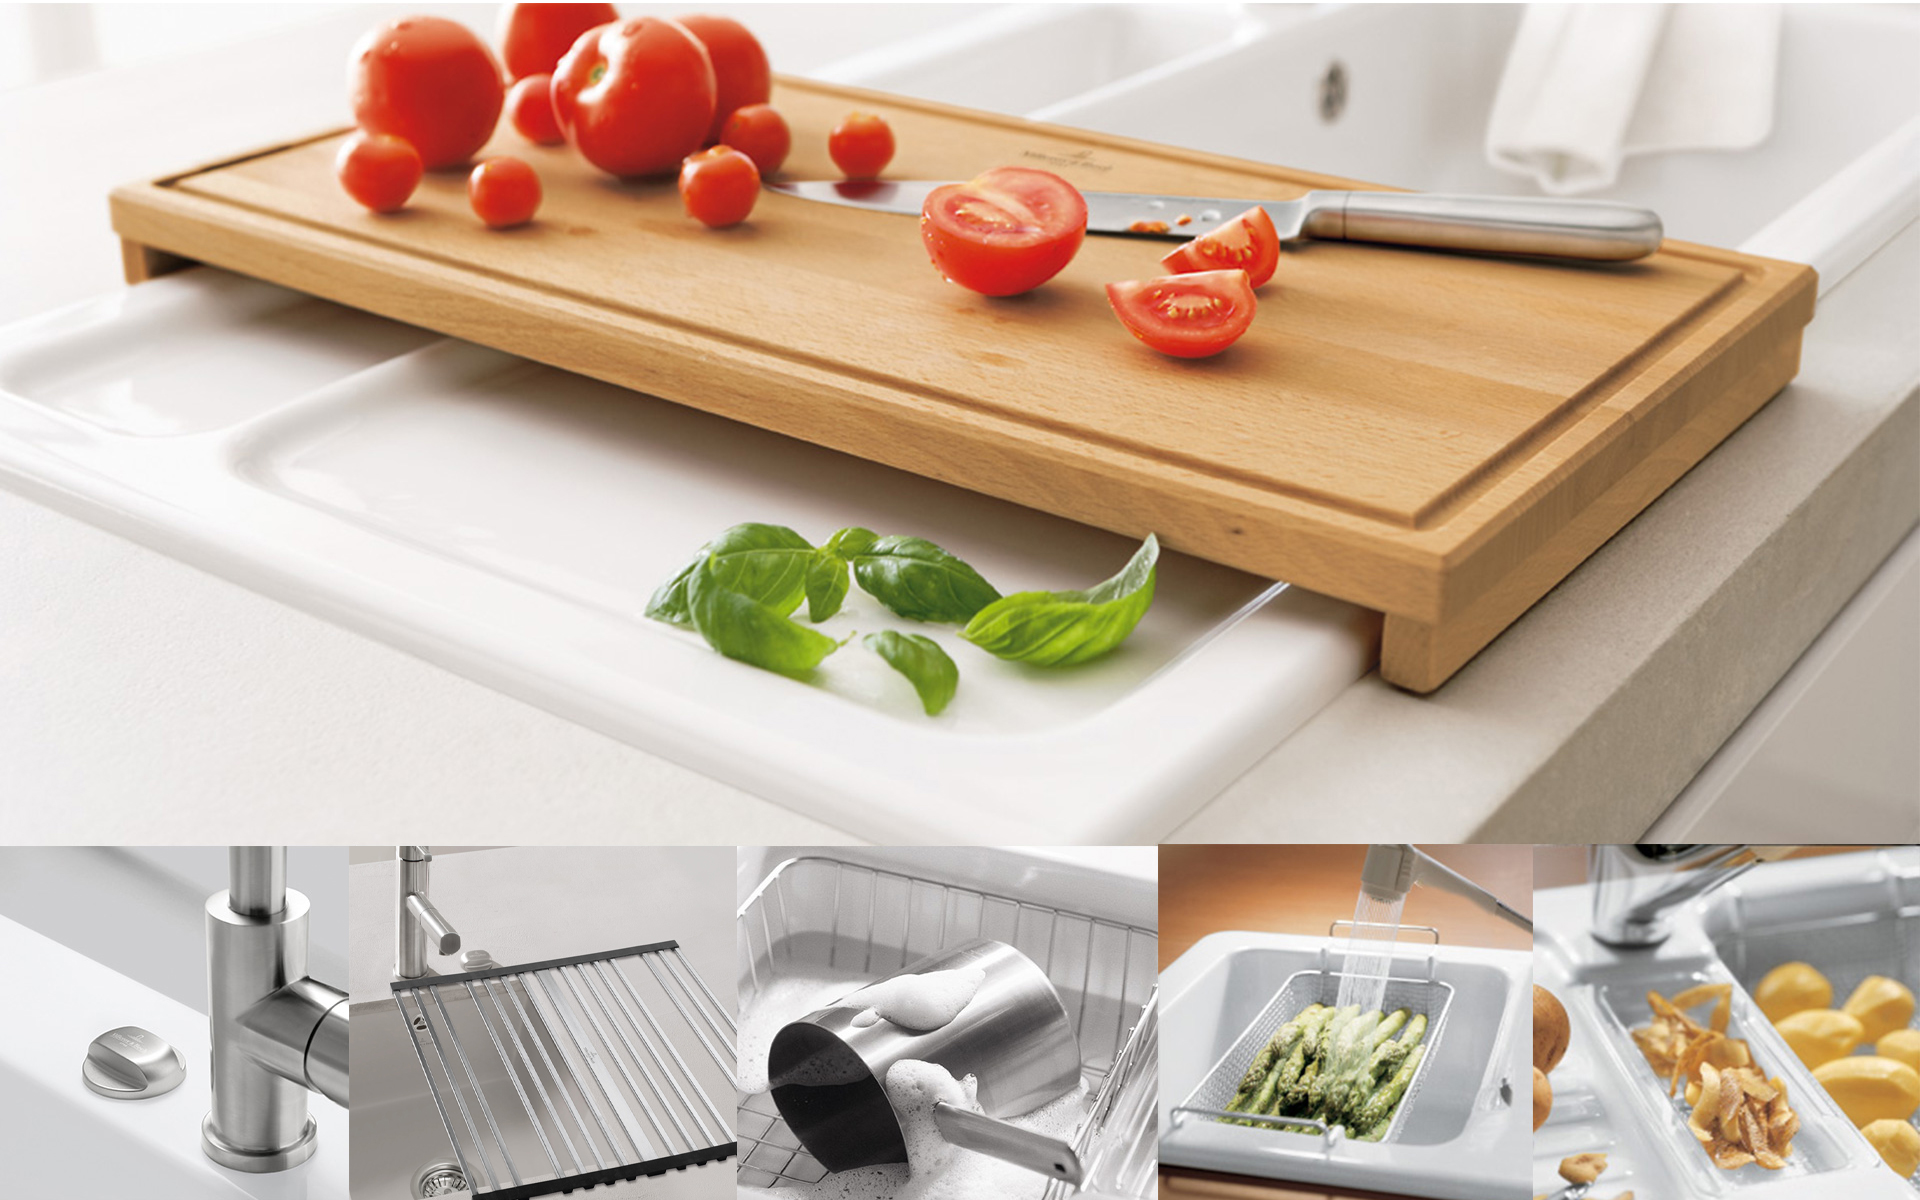 Cool Kitchen Accessories New Kitchen Style - New kitchen accessories